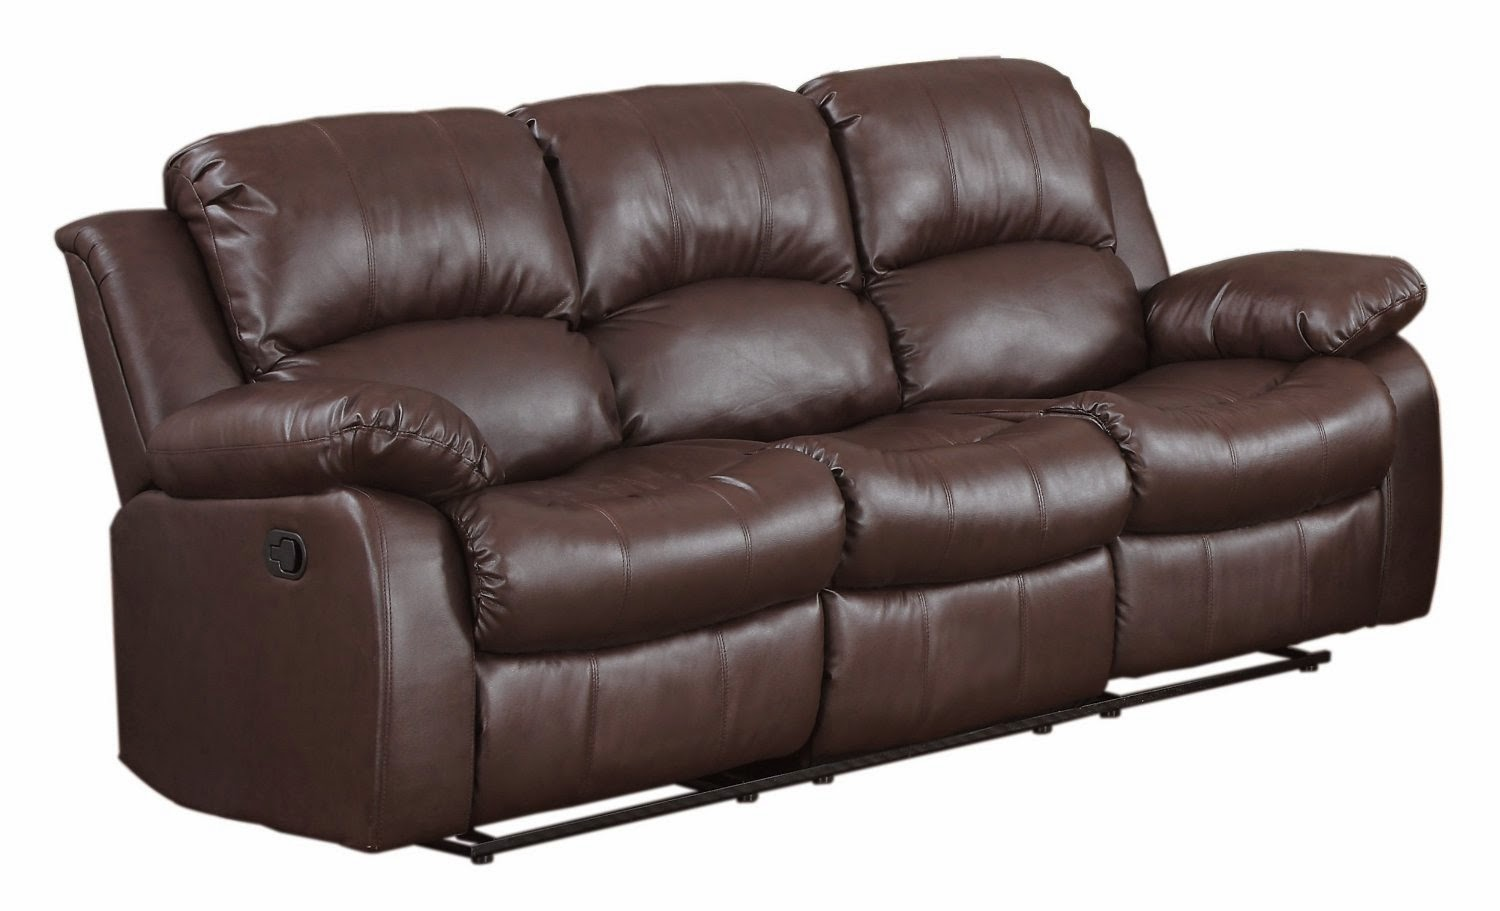 Reclining Sofa Leather Ex Display Bed Birmingham Cheap Recliner Sofas For Sale Sectional